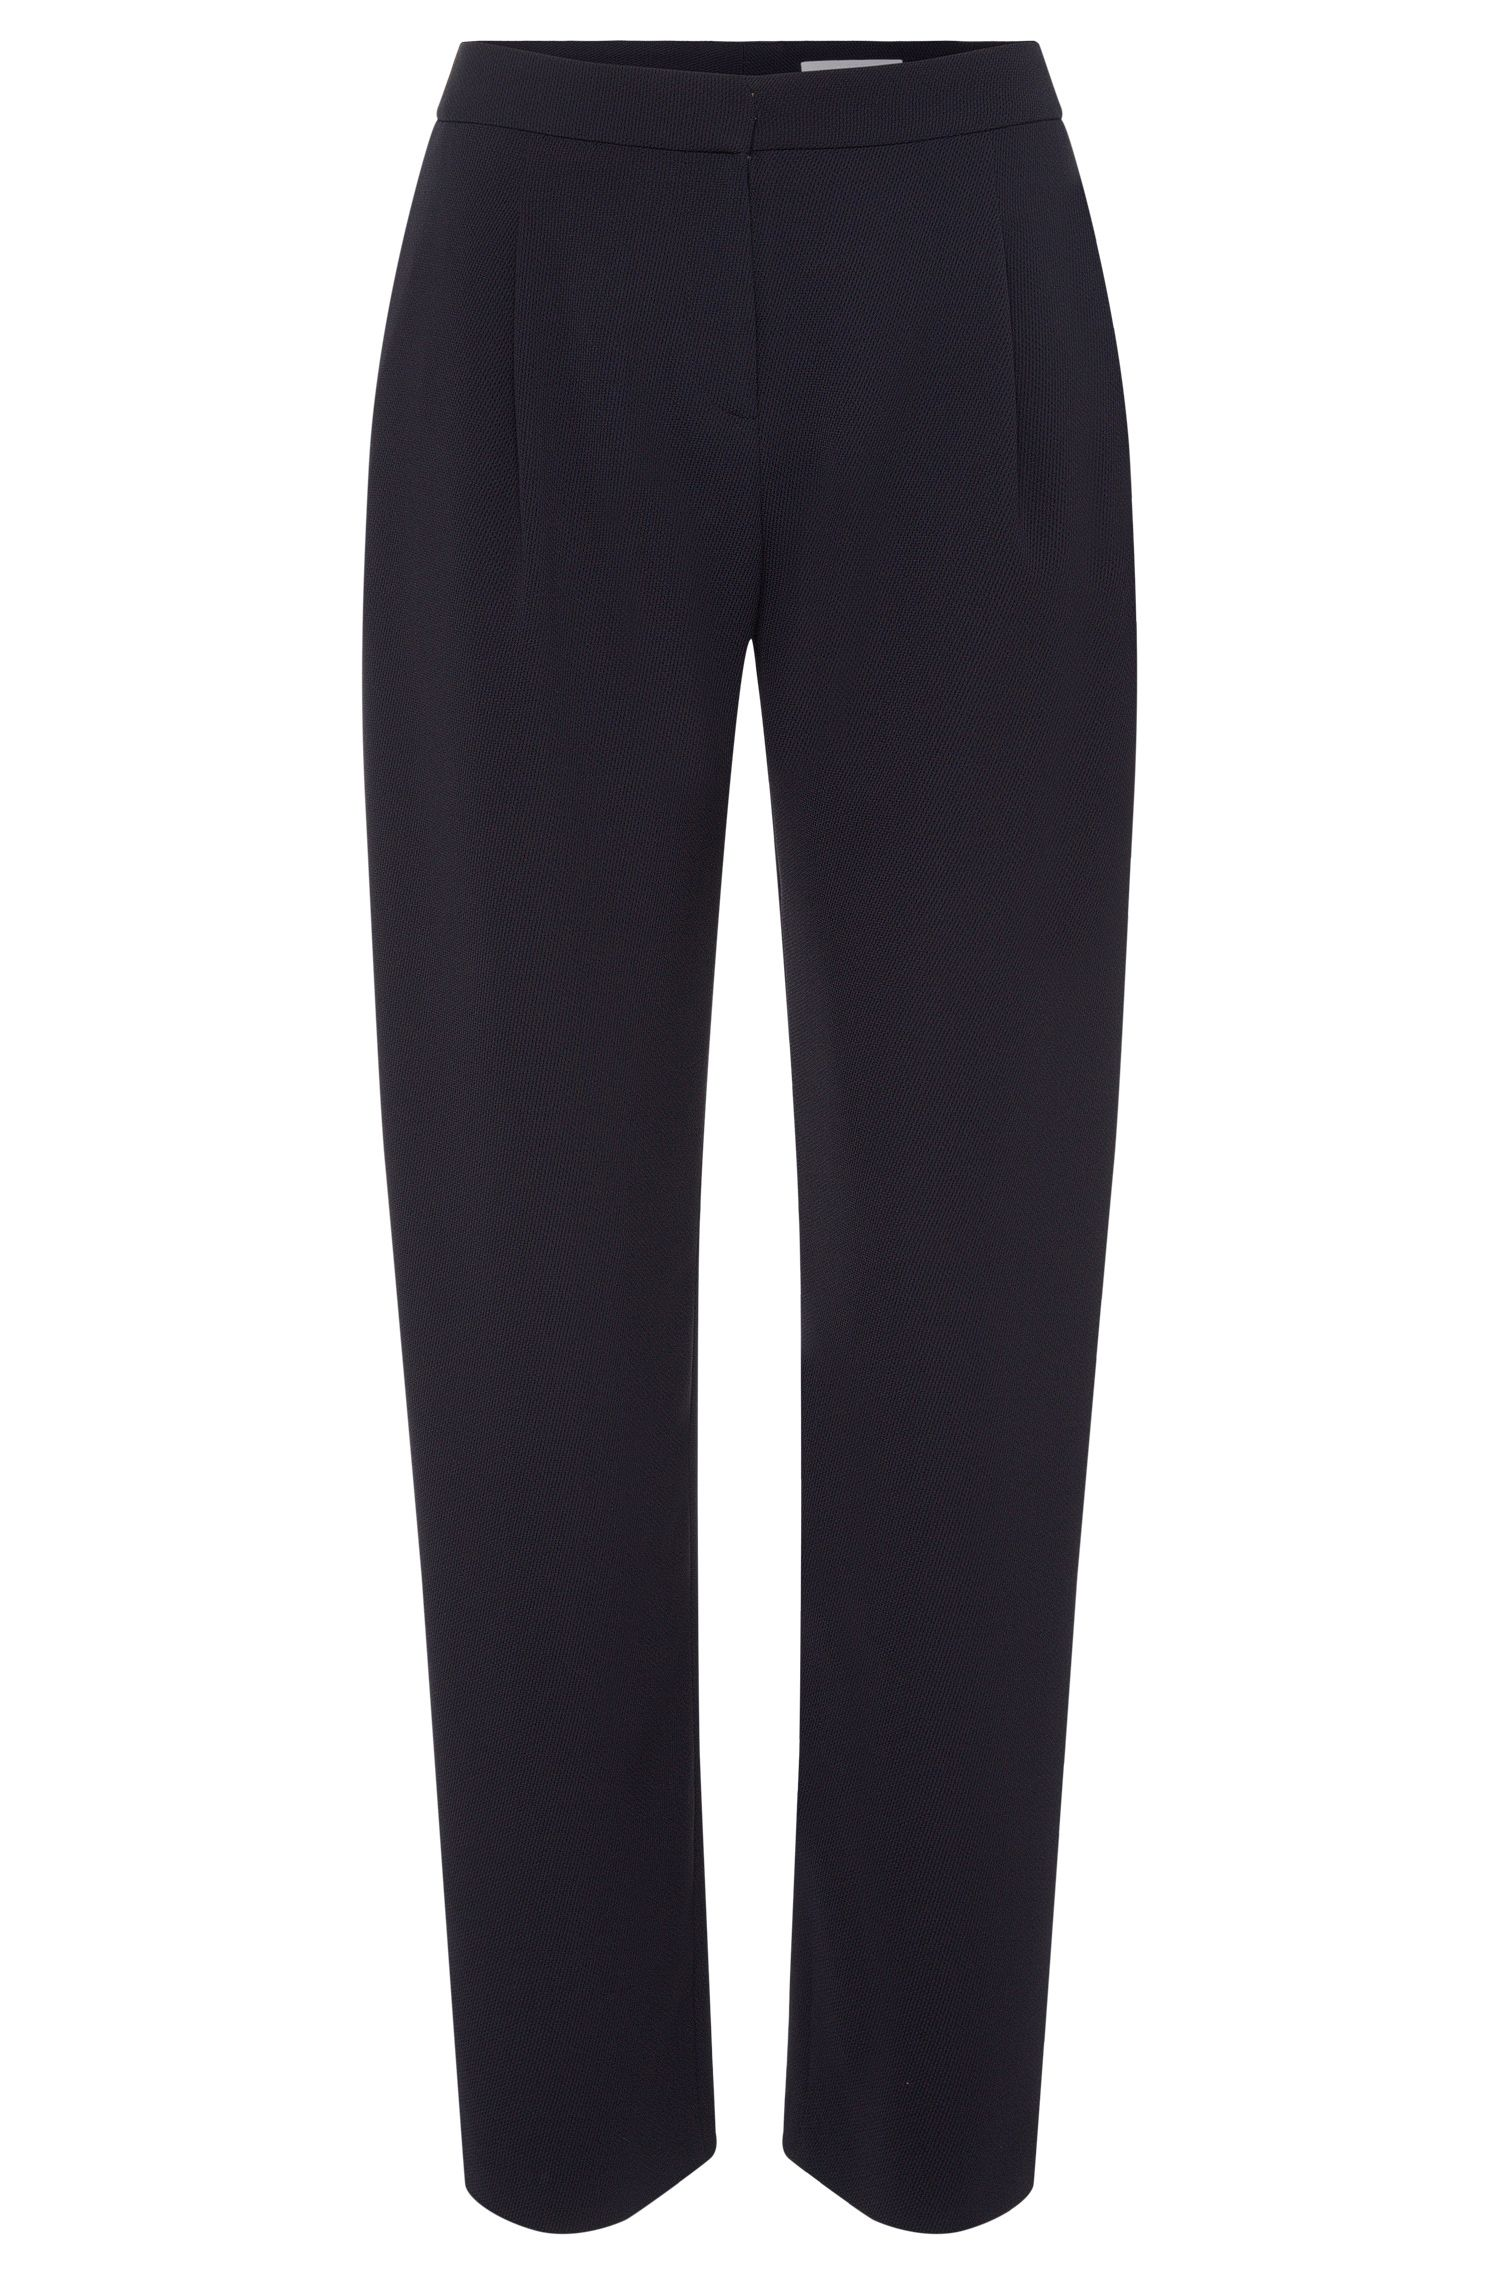 Strukturierte Relaxed-Fit Hose: 'Tesinea'